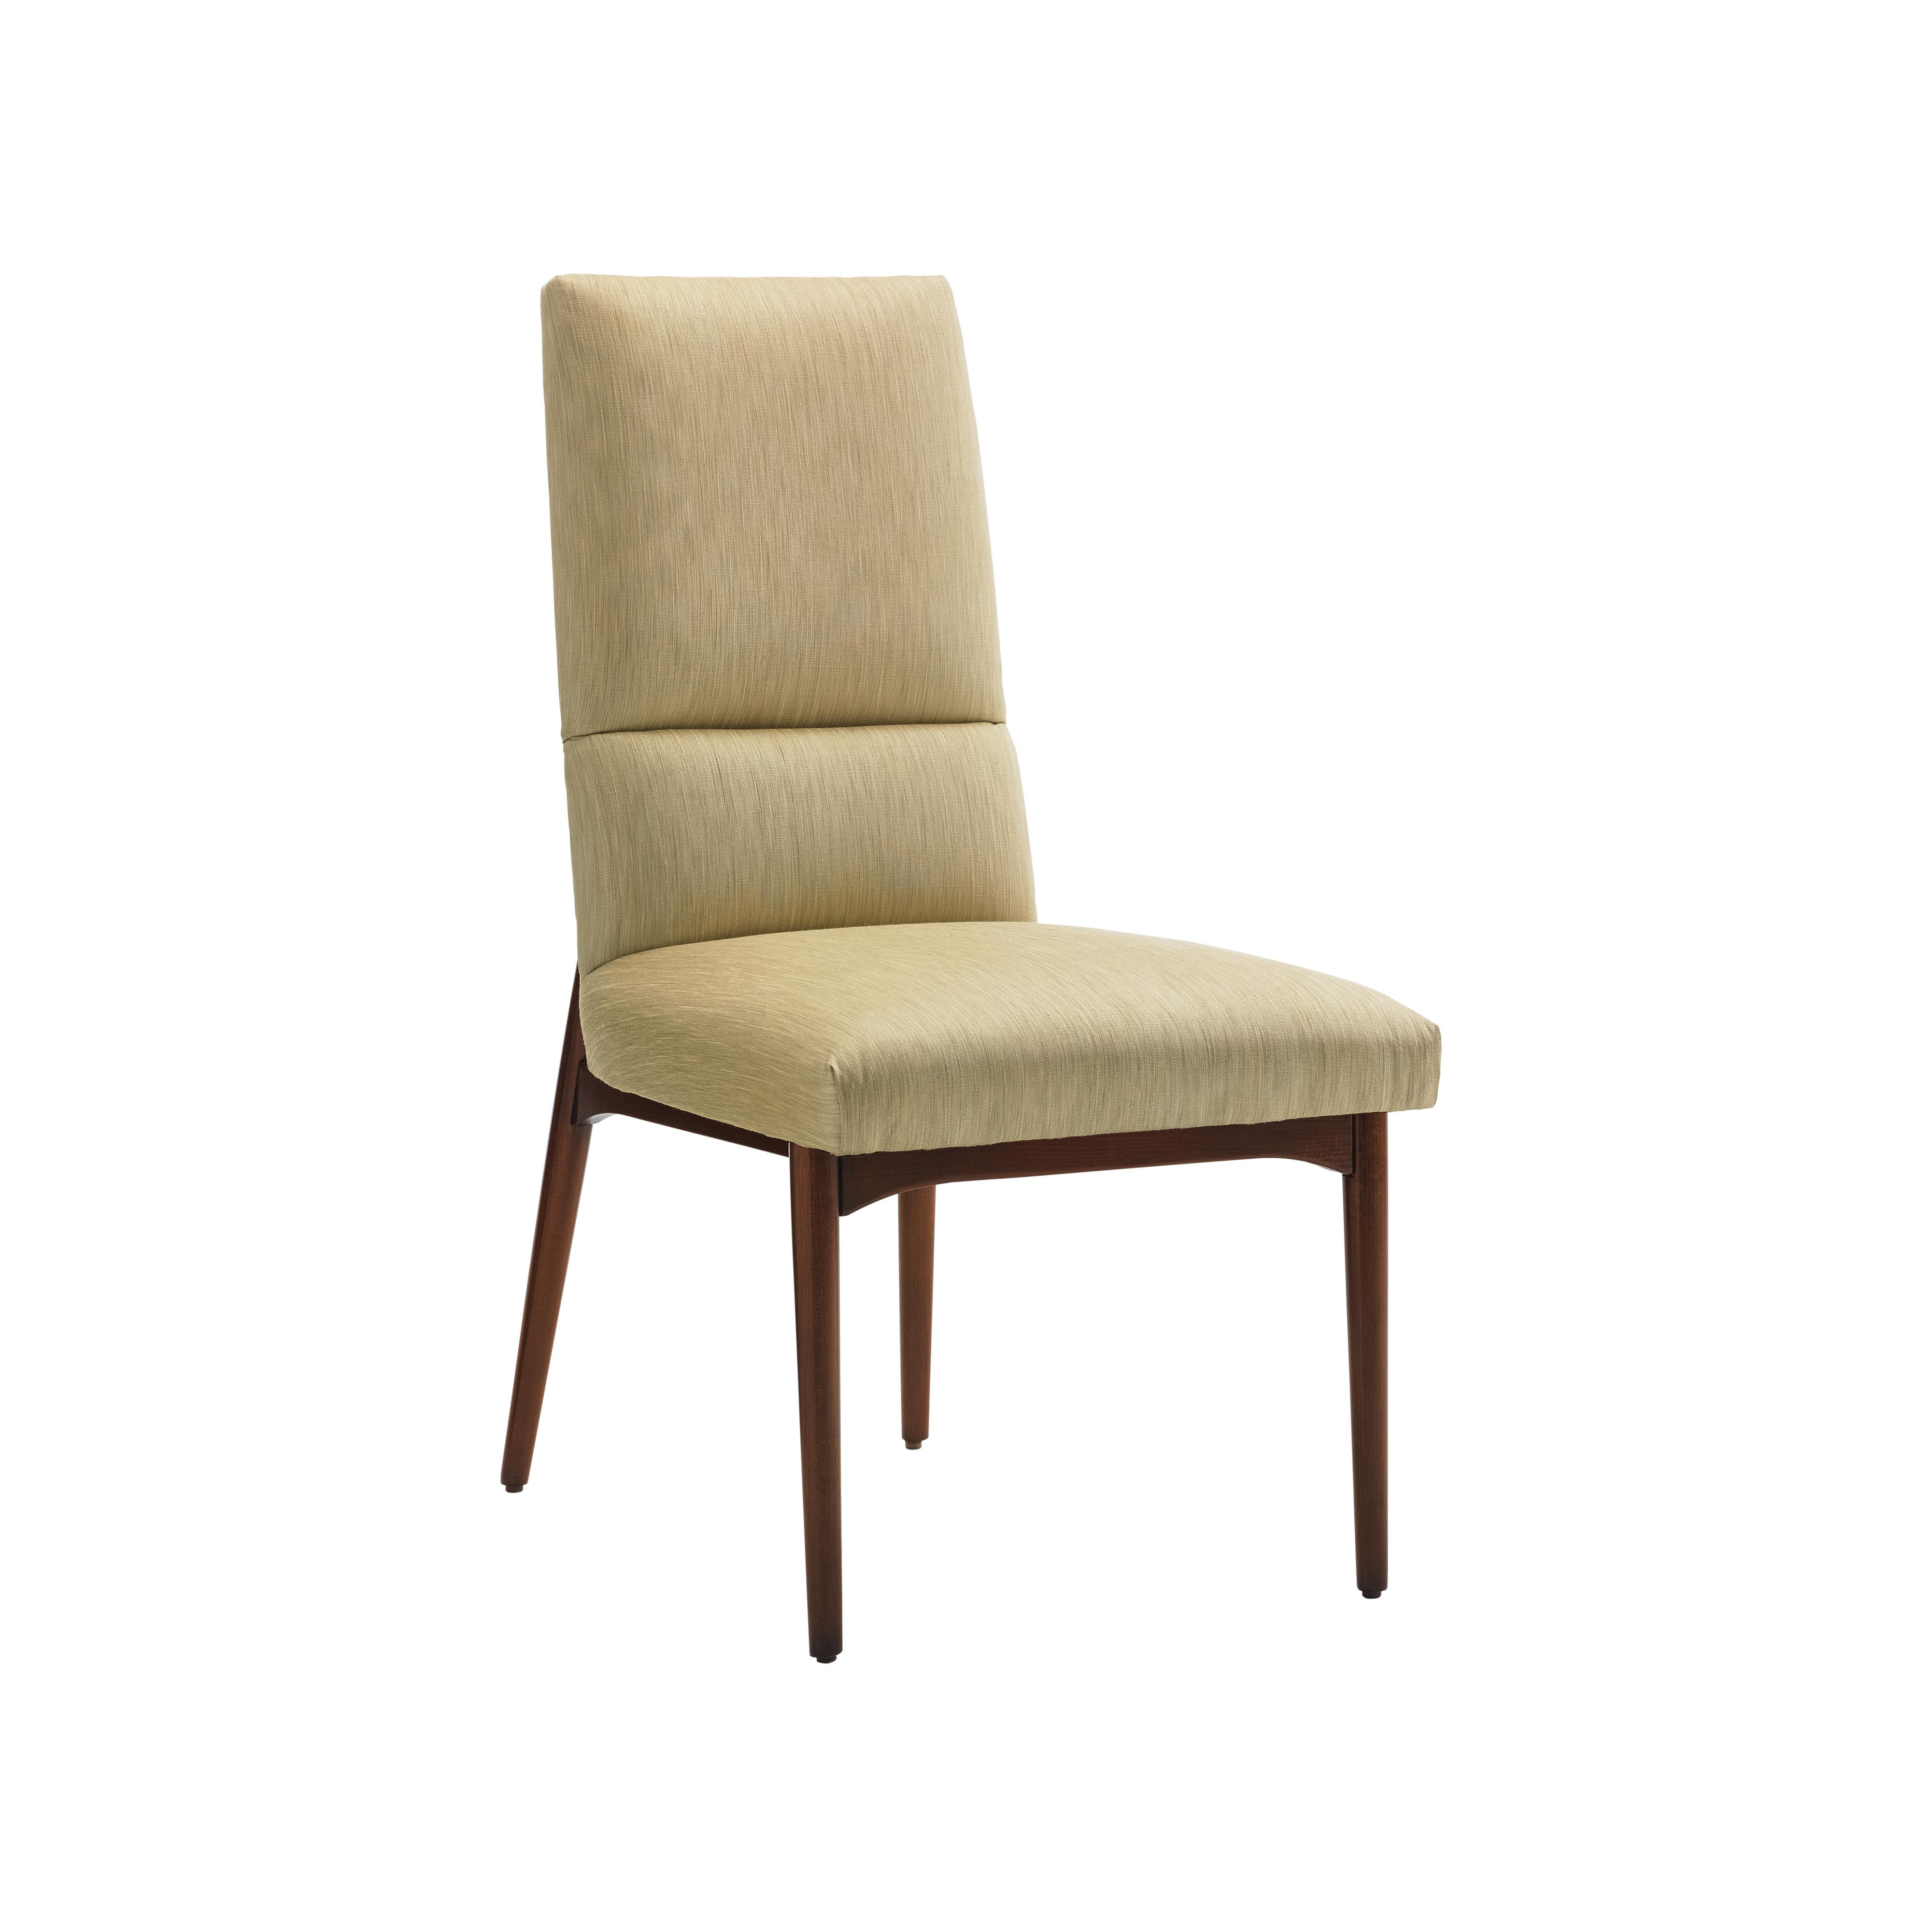 Lexington TAKE FIVE Chelsea Upholstered Side Chair - Item Number: 723-880-01